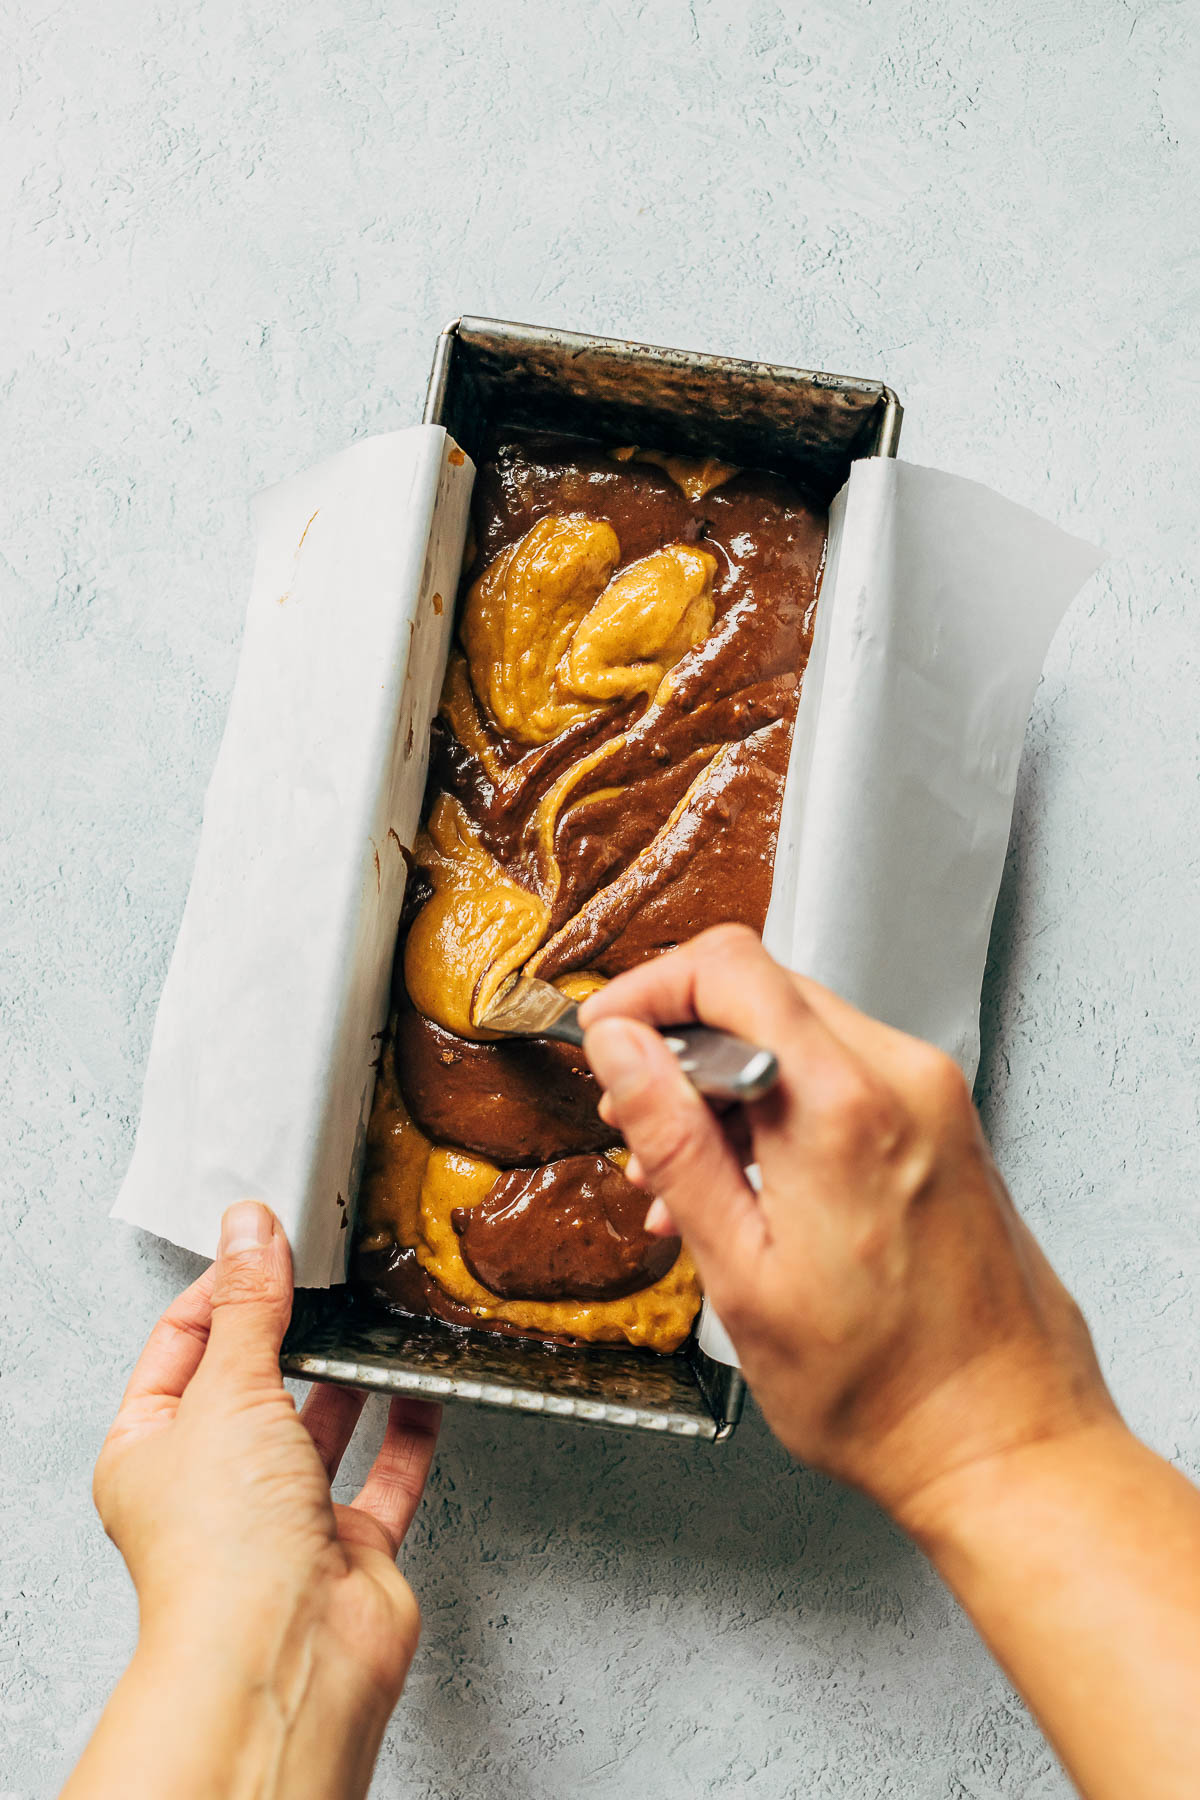 A hand swirling loaf batter in a baking tin with a butter knife.